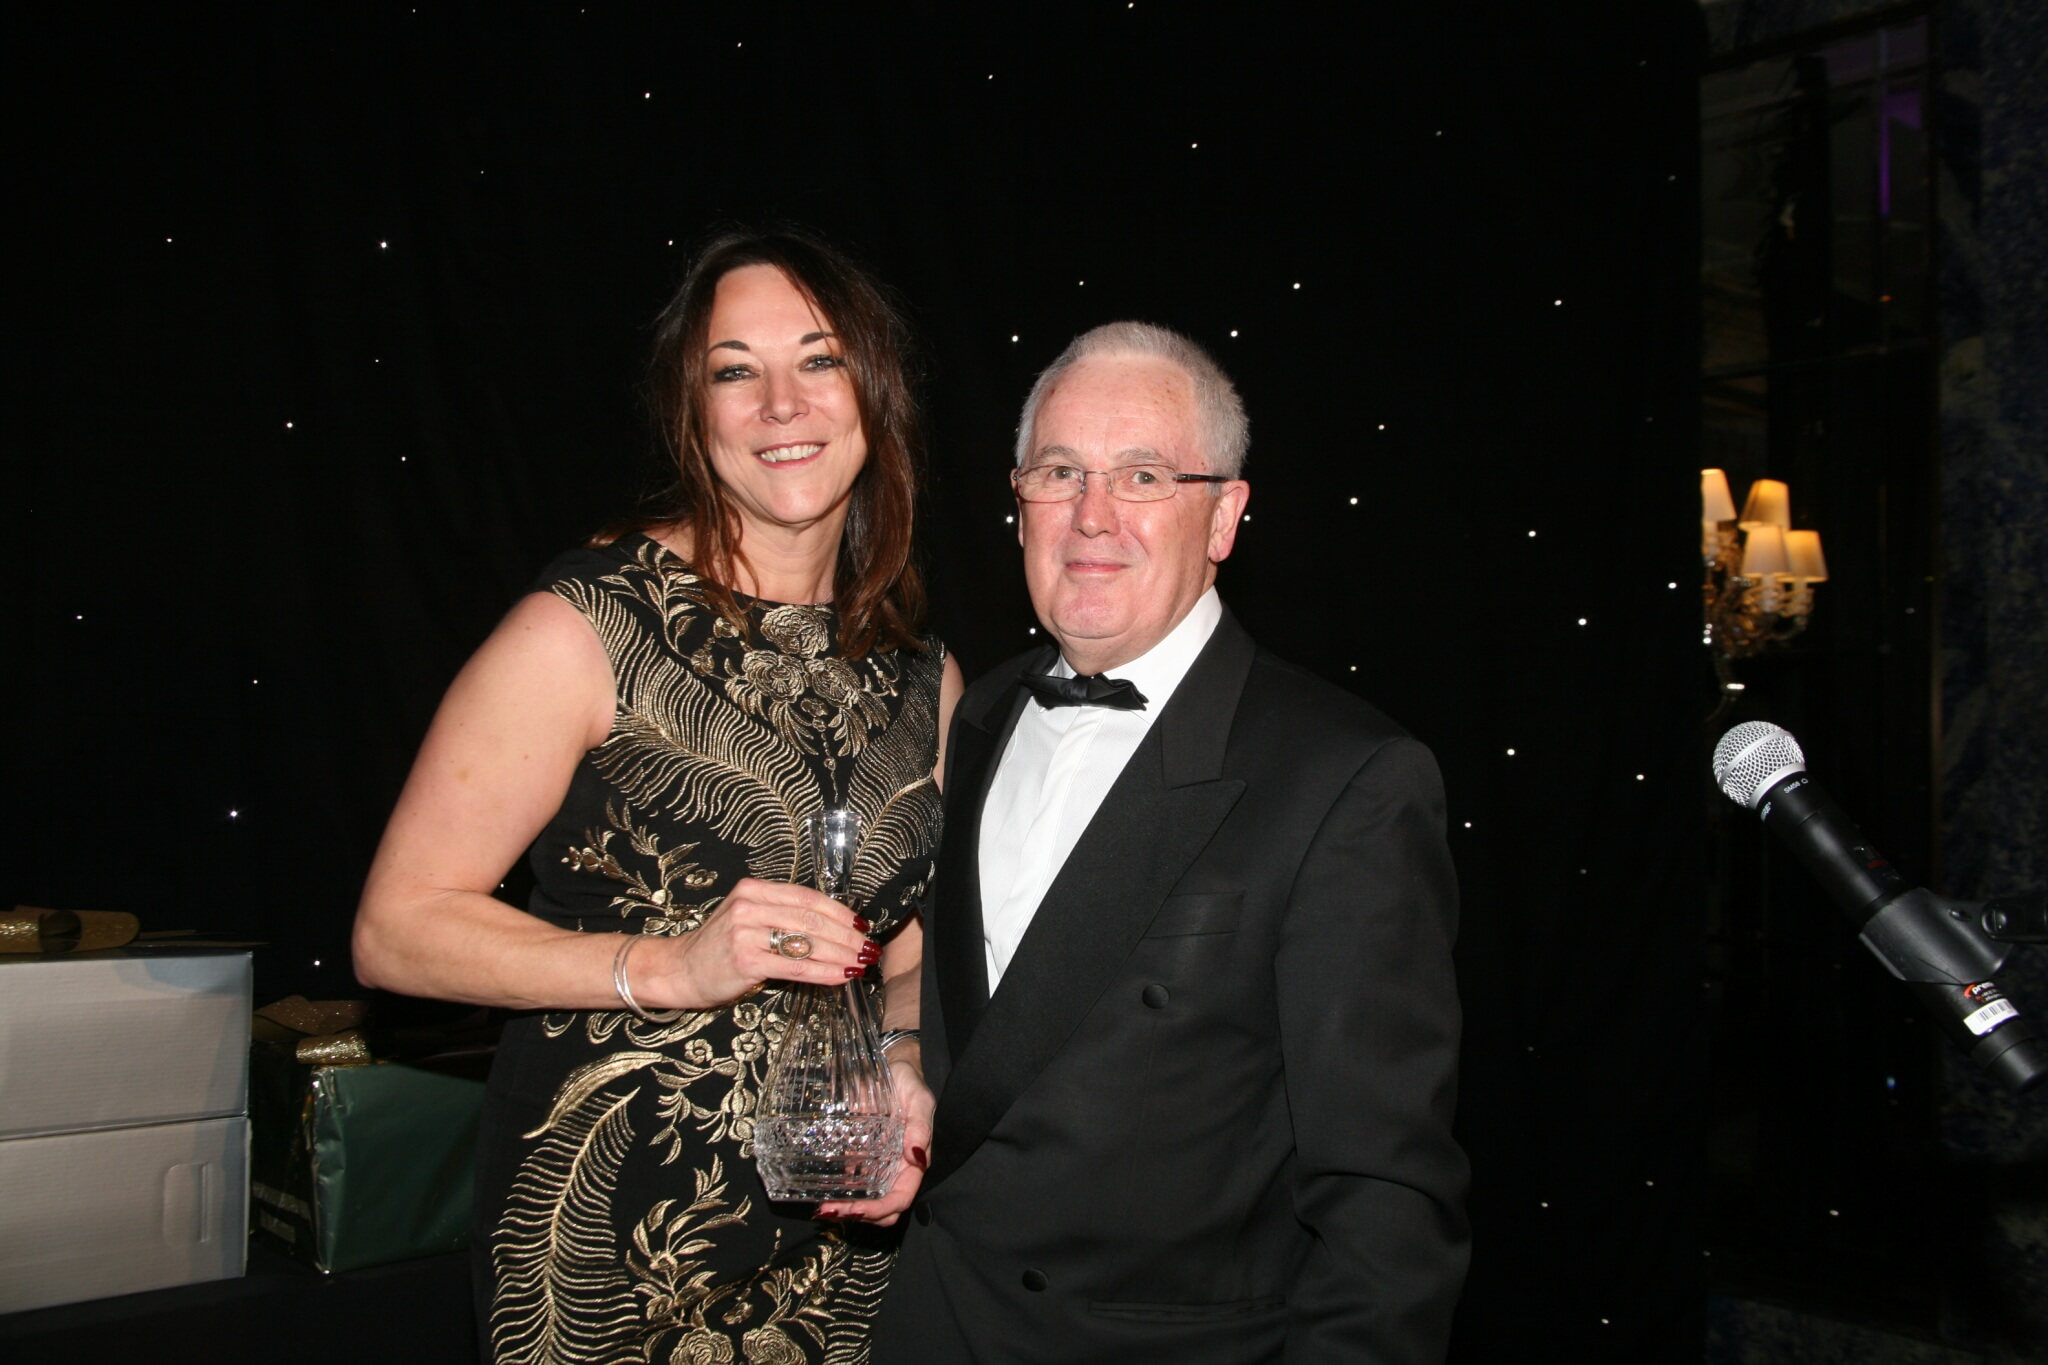 Partner Karen Cooksley awarded the Movers & Shakers 'Fellowship' award